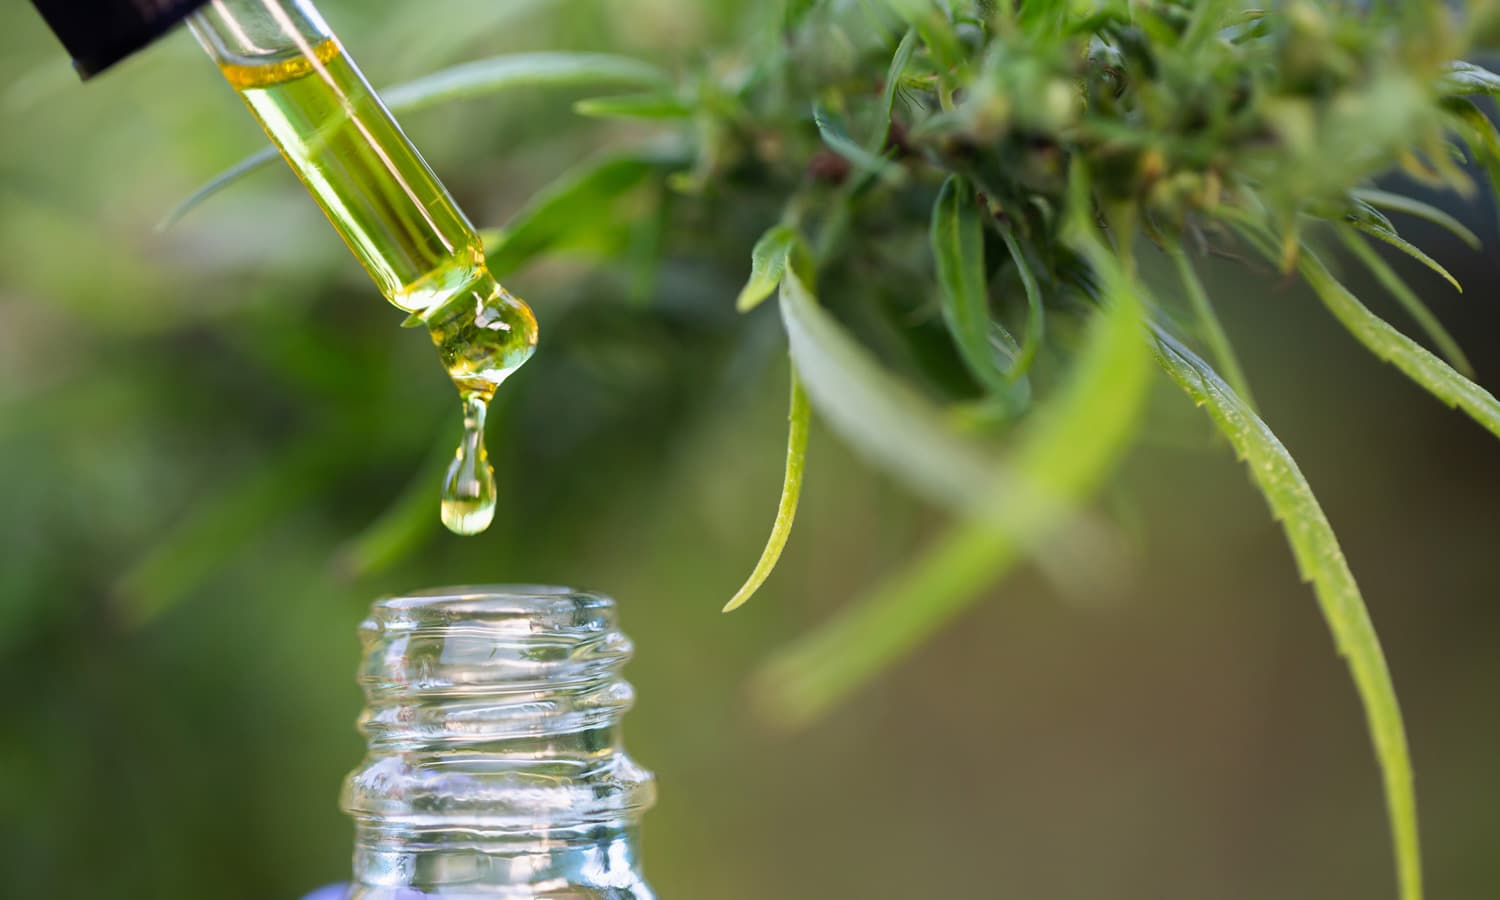 Can Taking CBD Make It Easier To Digest Political News?